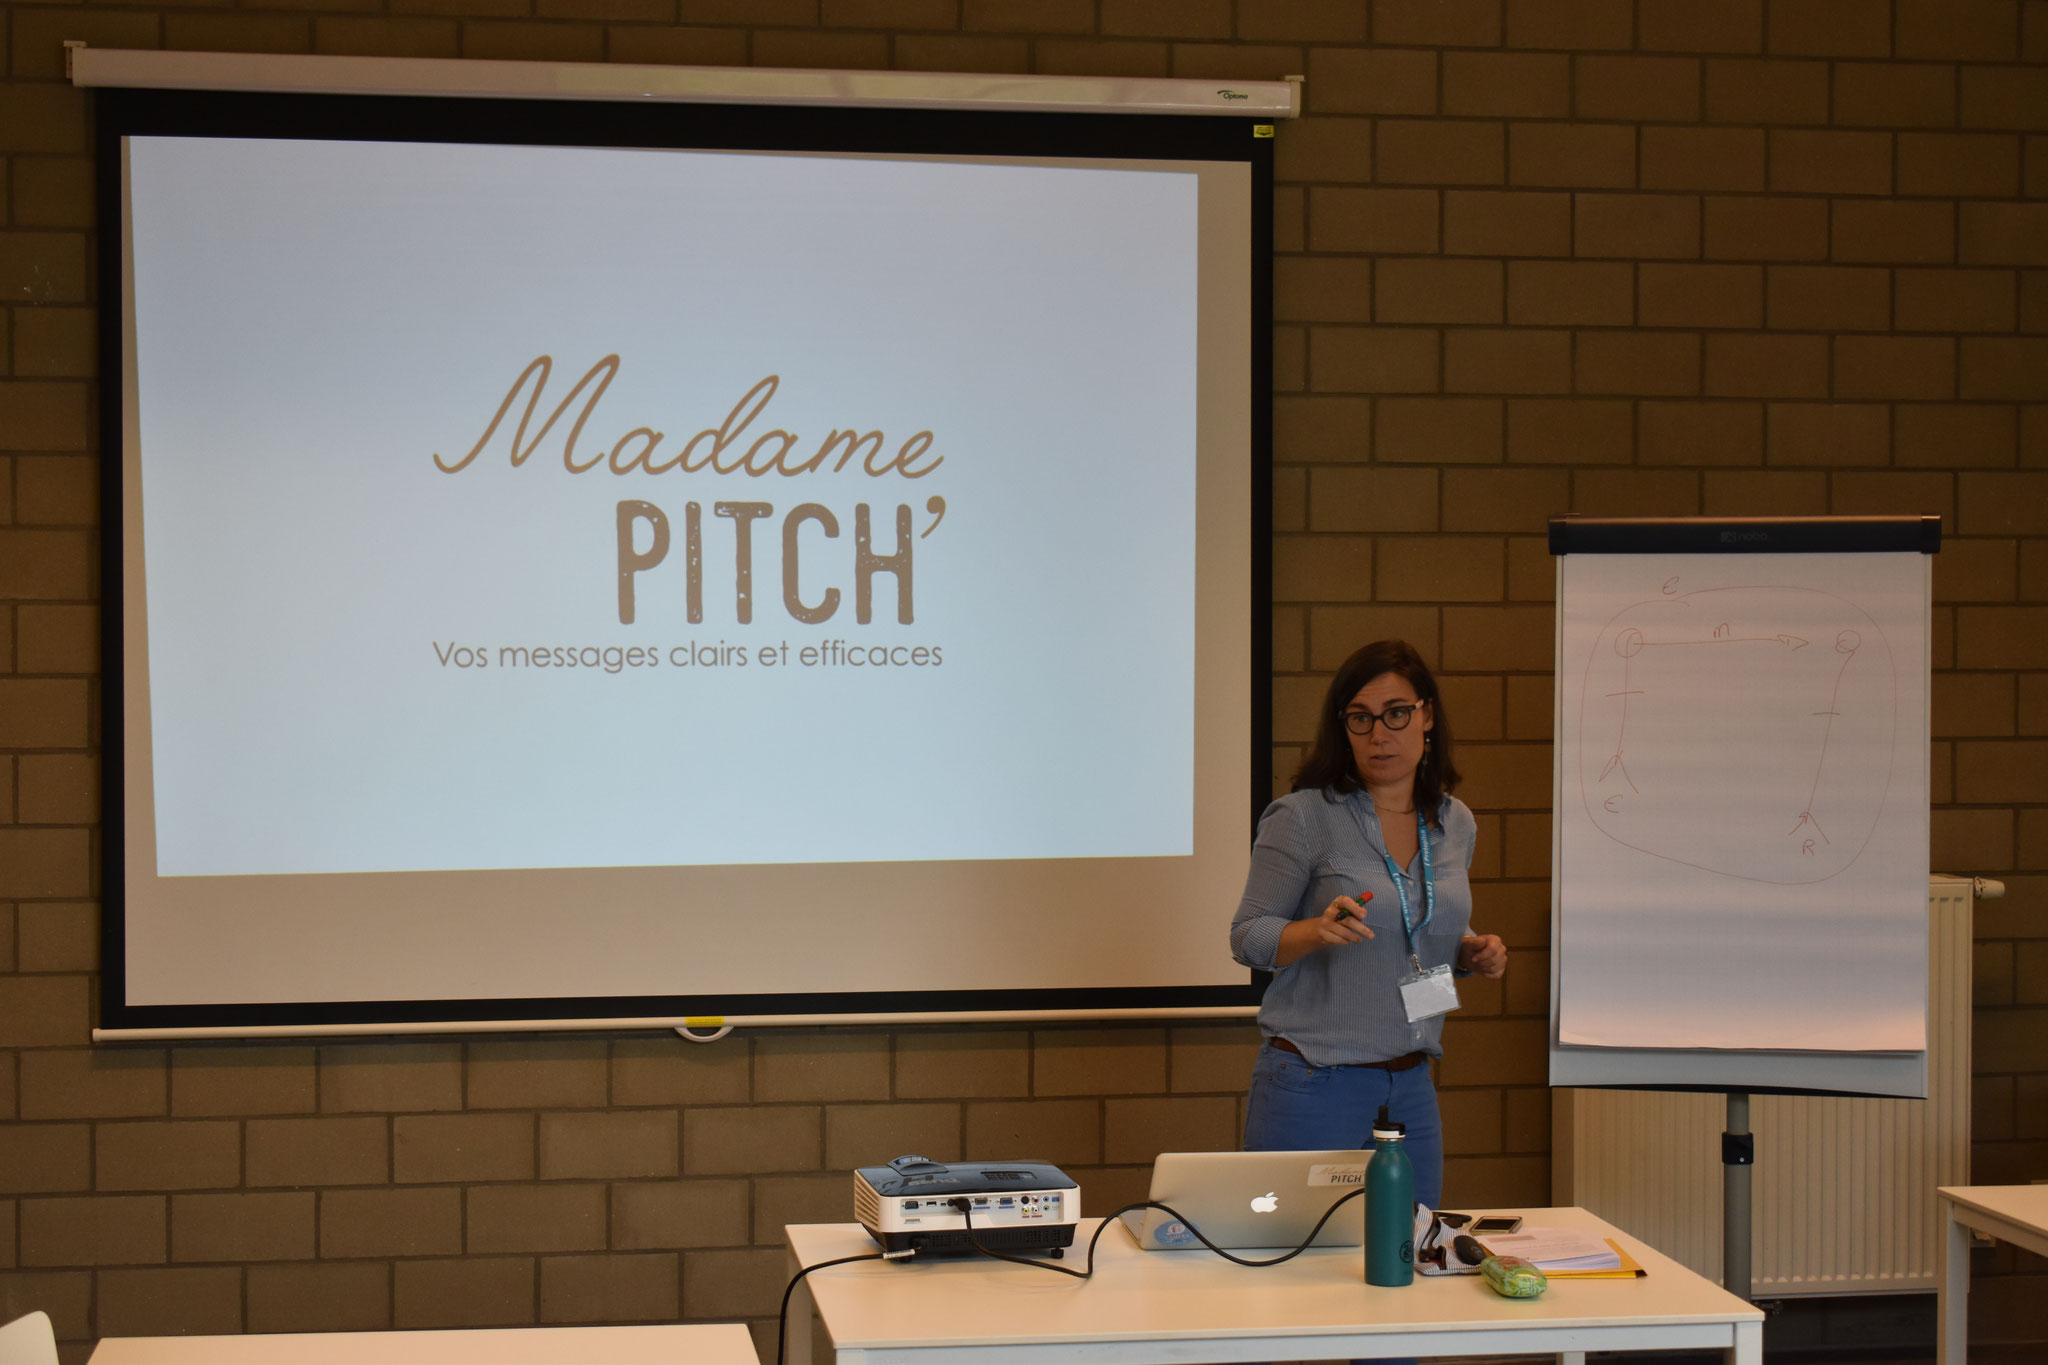 Pitchworkshop